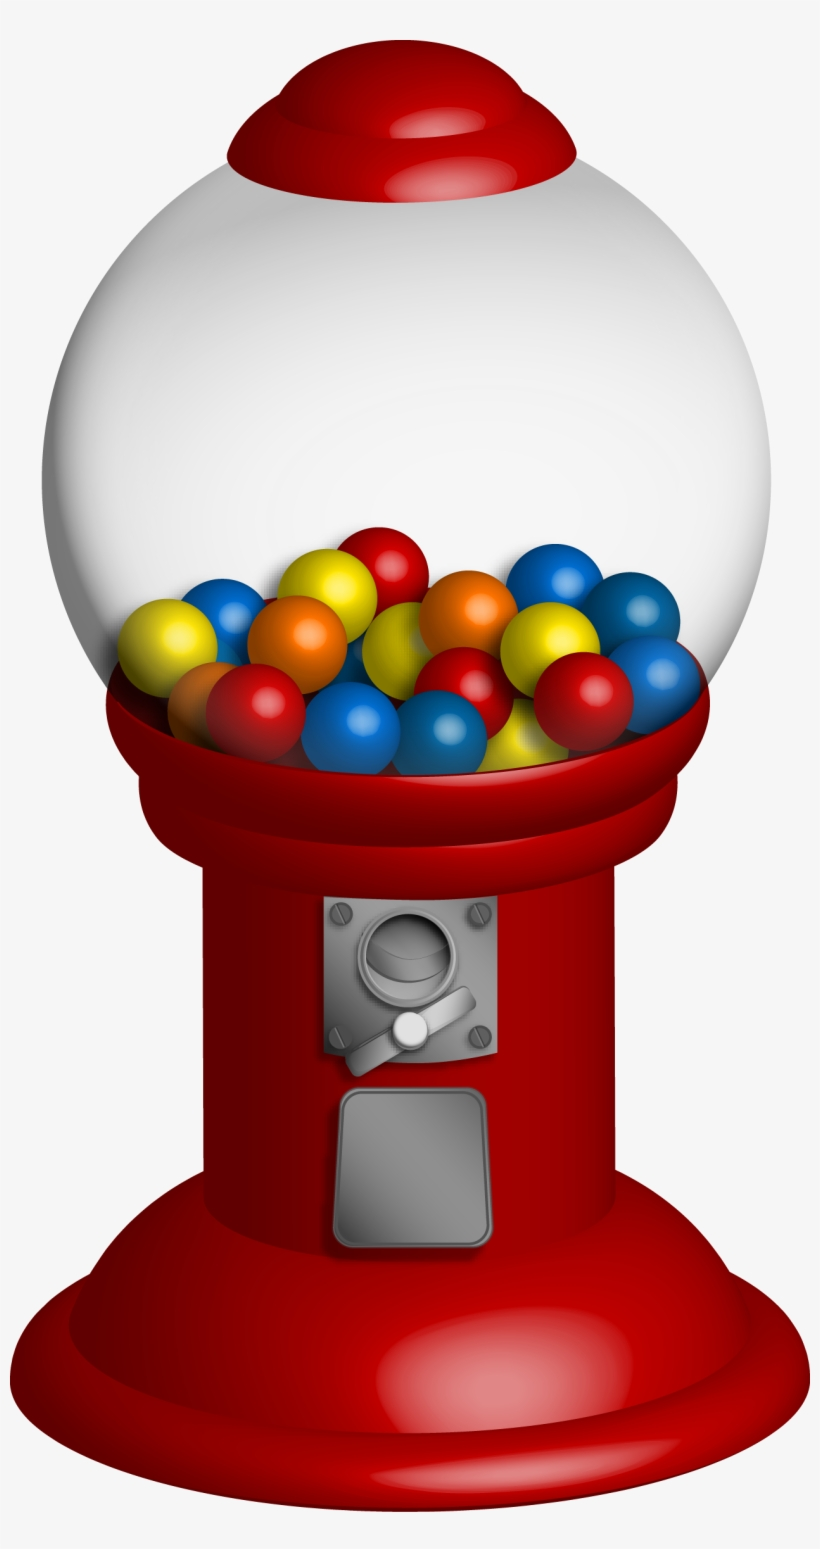 hight resolution of gumball machine clipart bubble gum machine png